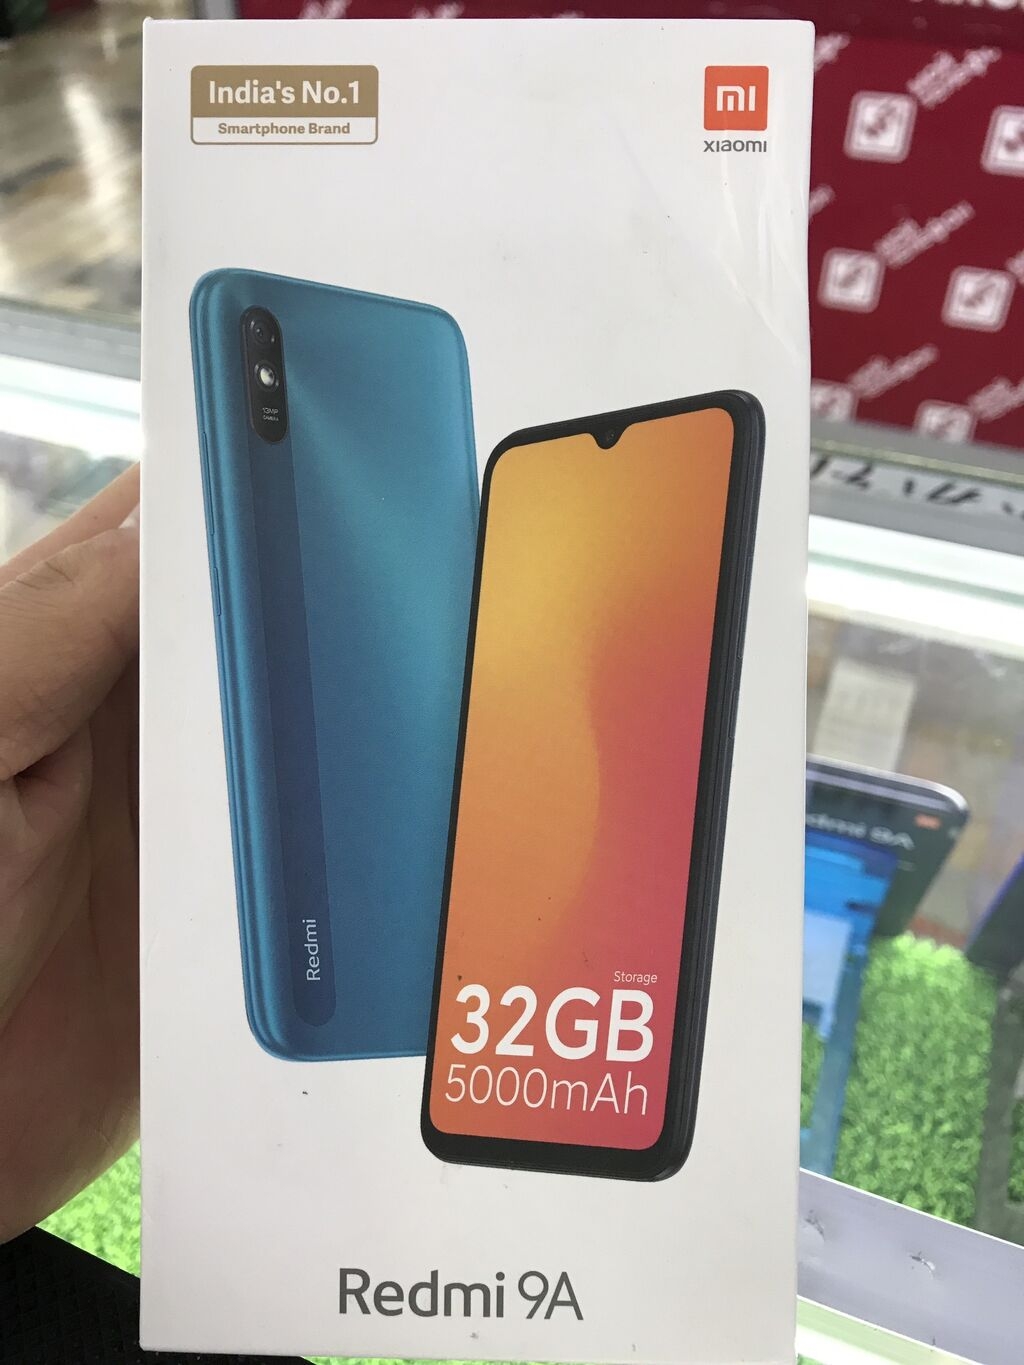 Redmi 9A Indias model New best product  Оптом и в розницу: Redmi 9A Indias model New best product  Оптом и в розницу